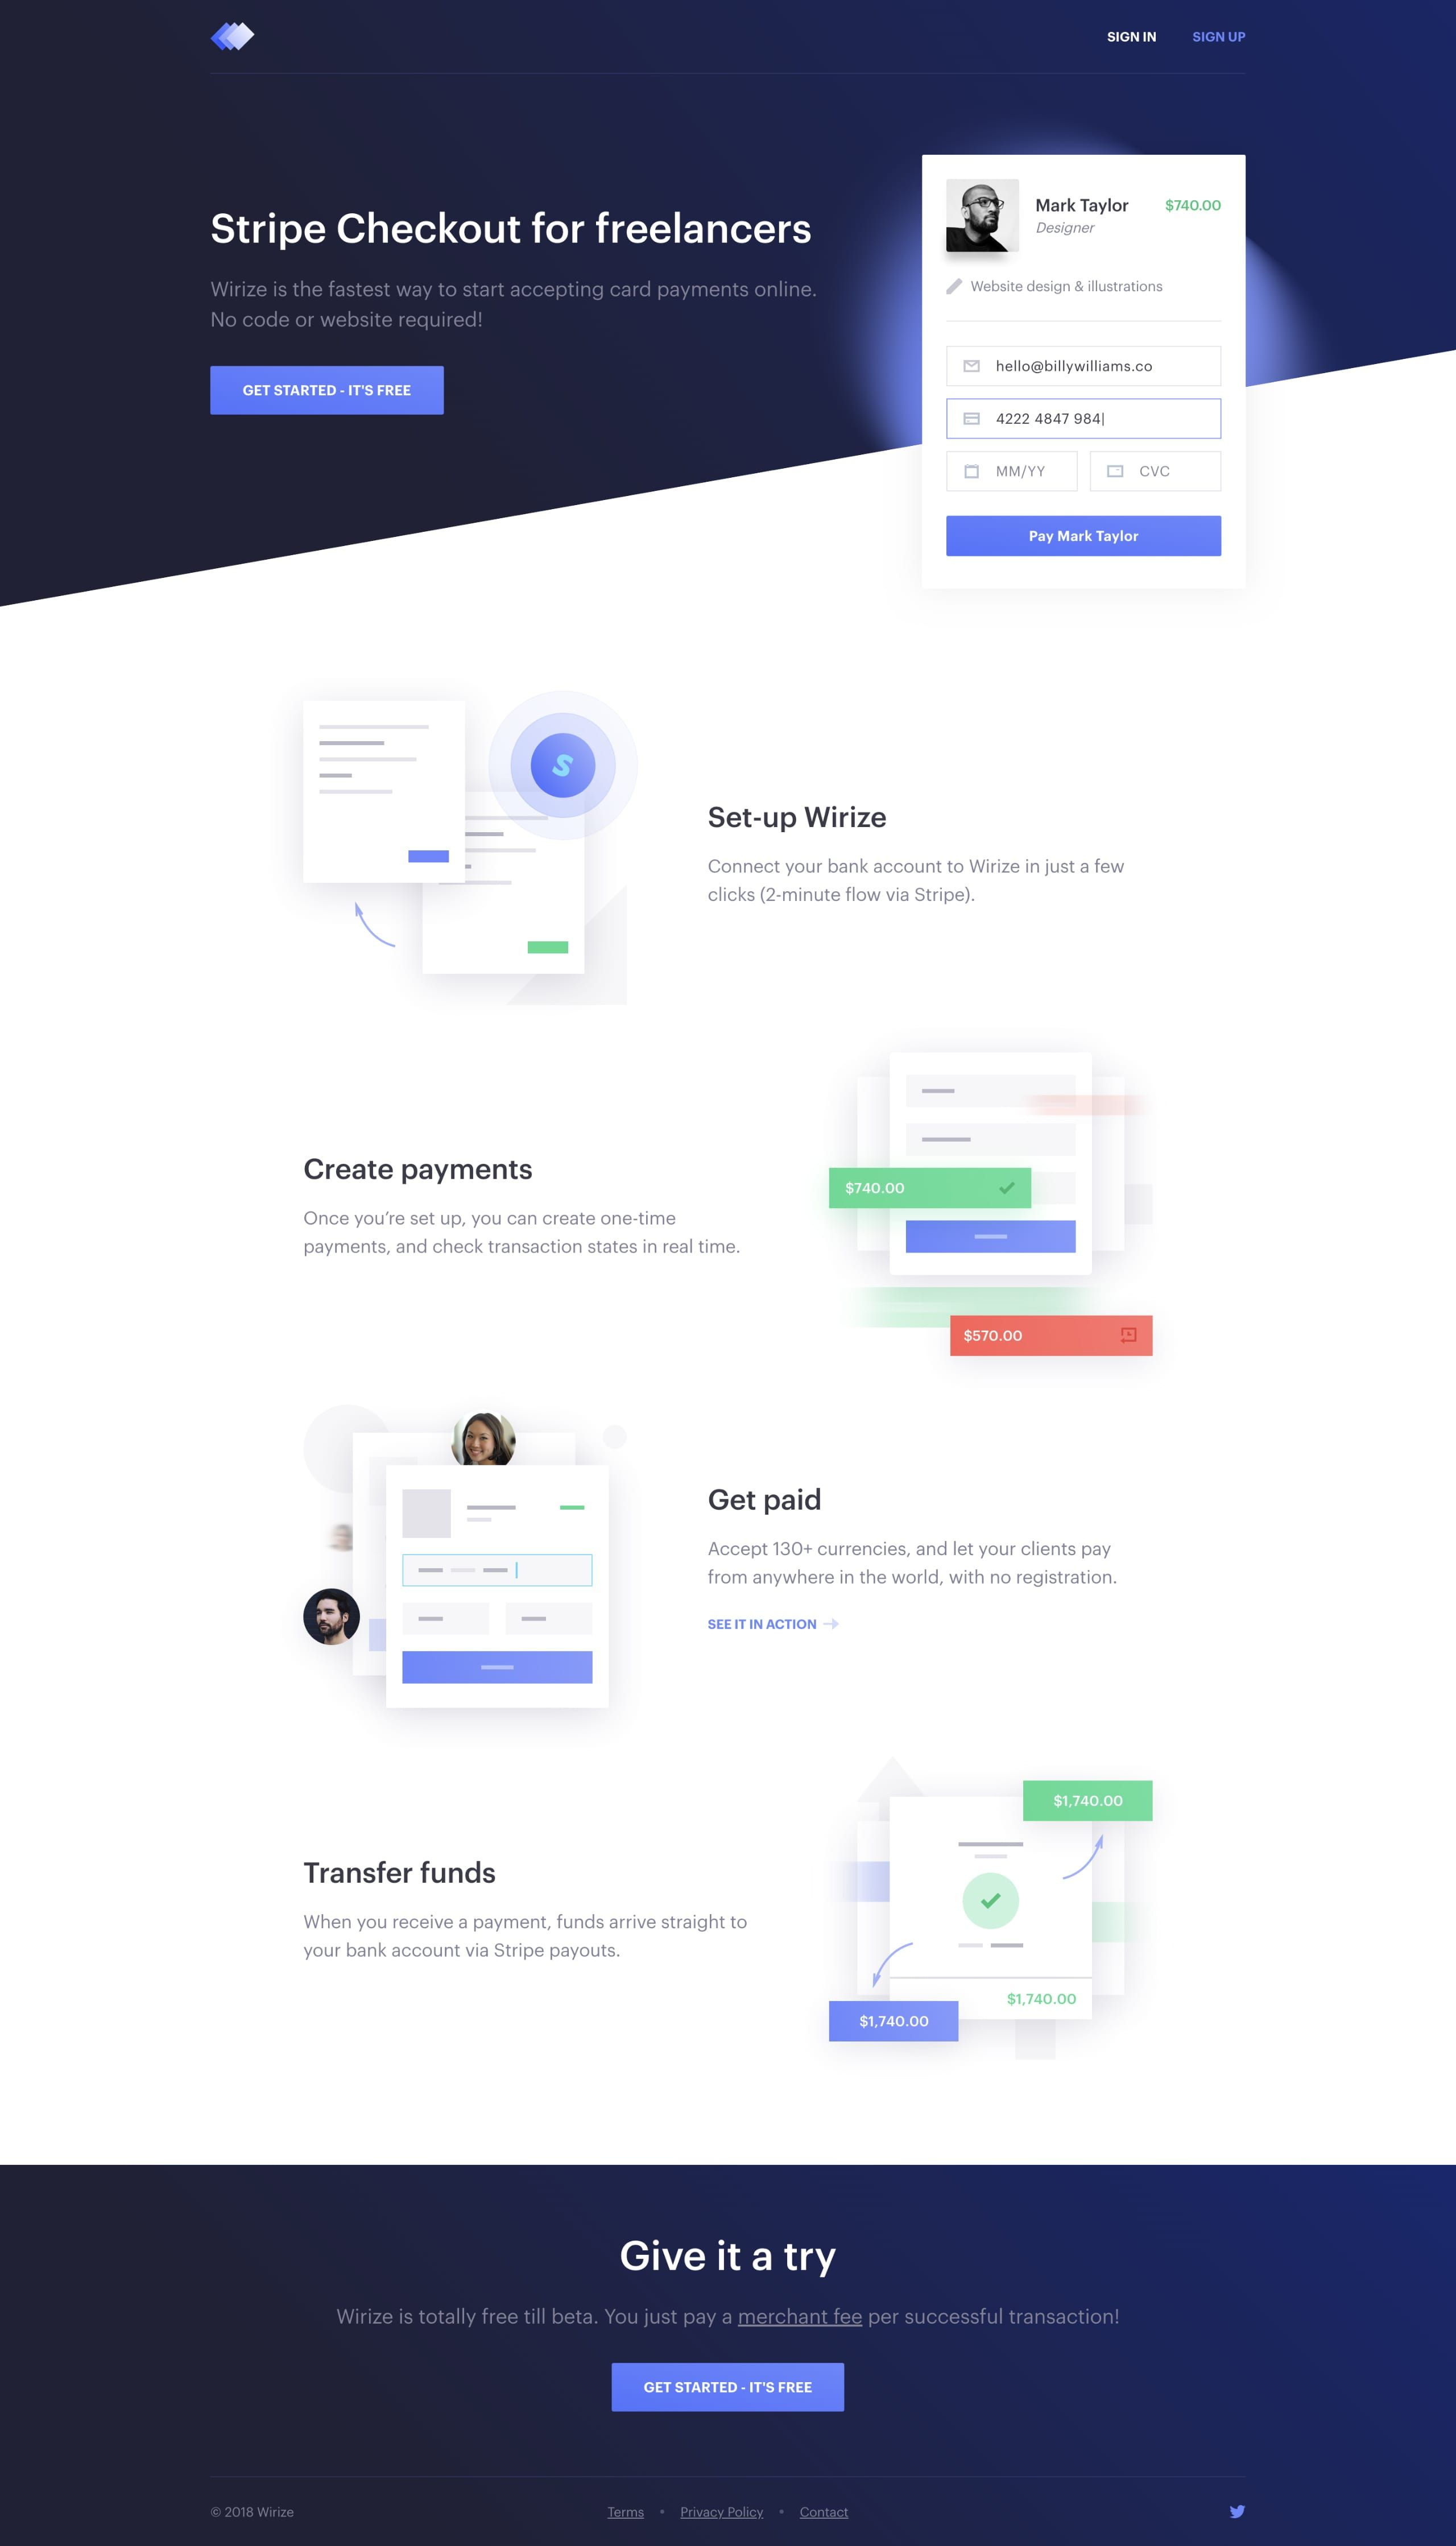 Beautiful Designed Landing Page For Wirize A Simple Stripe Checkout Service For Freelancers Landing Page Design Web Design Web Design Inspiration